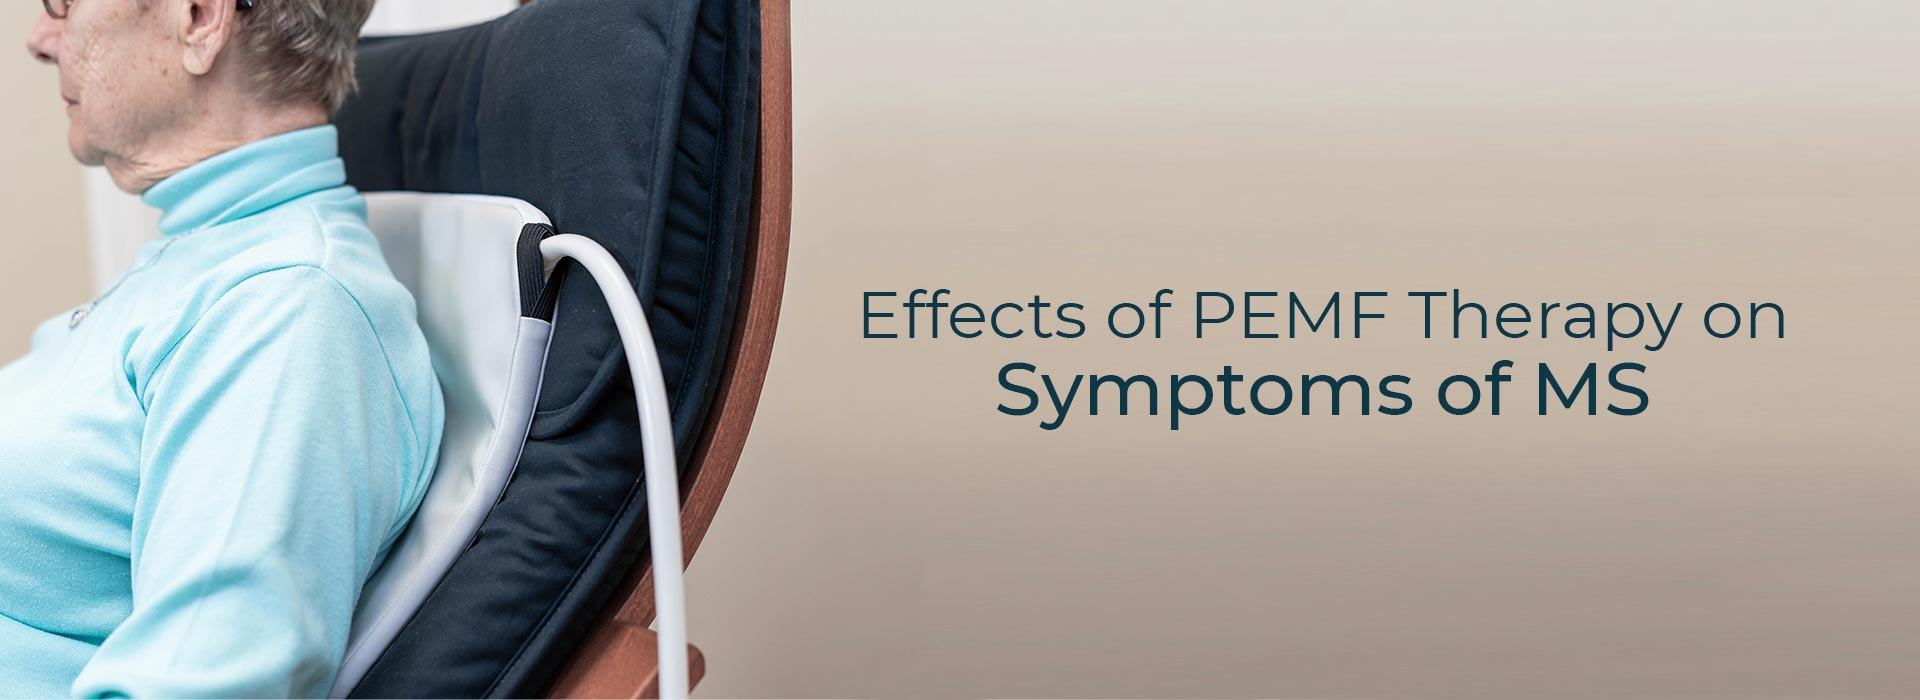 Effects of PEMF Therapy on Symptoms of MS